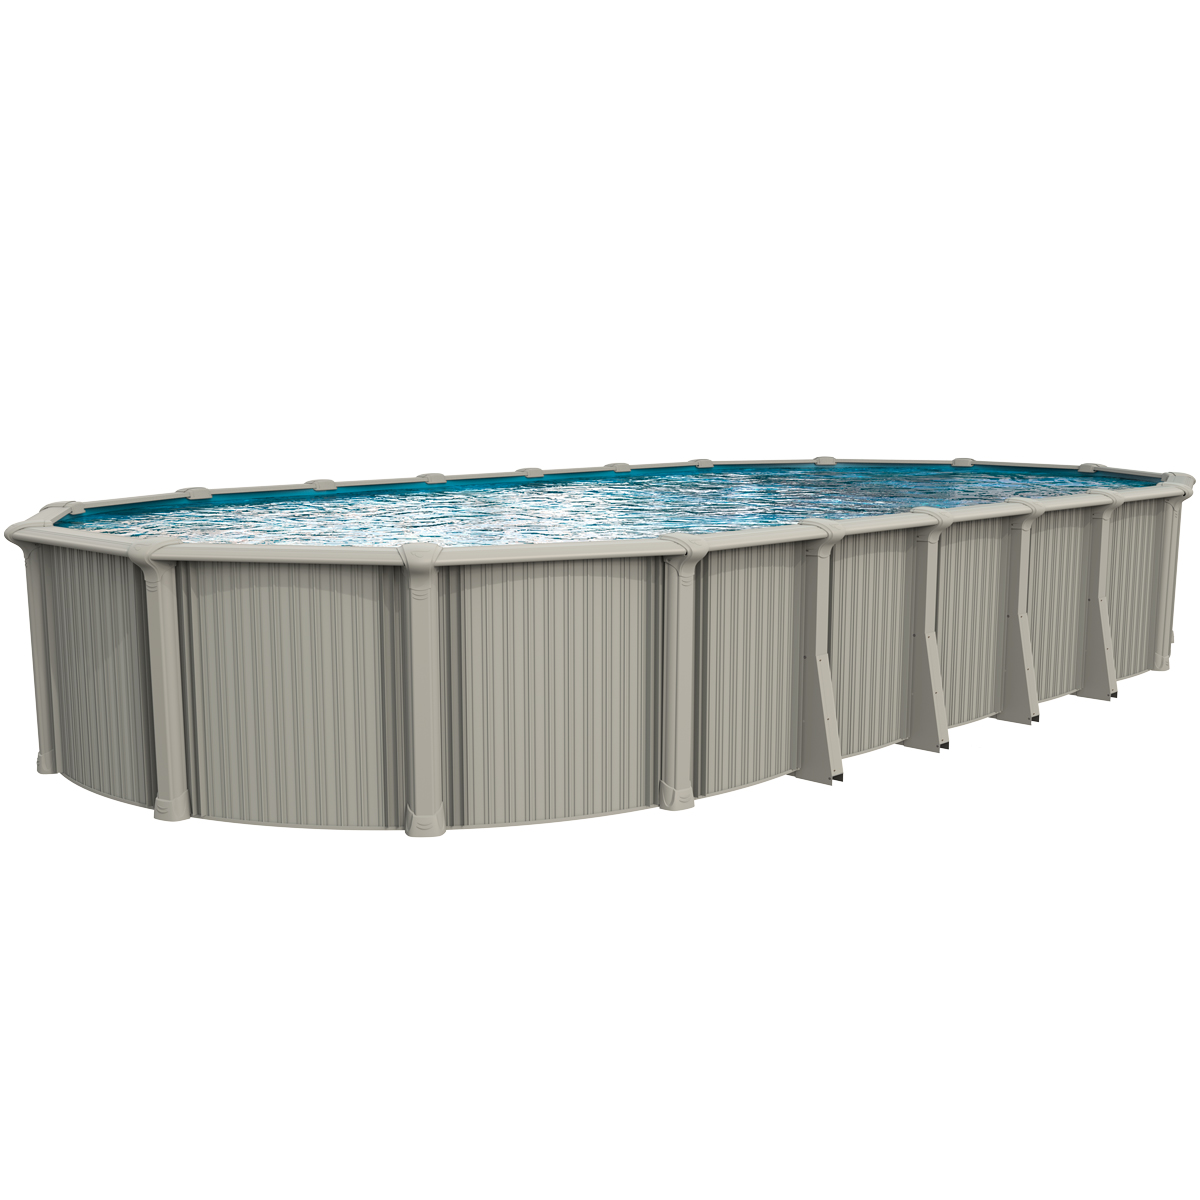 "54"" OASIS (OVAL) SEMI-INGROUND POOL"